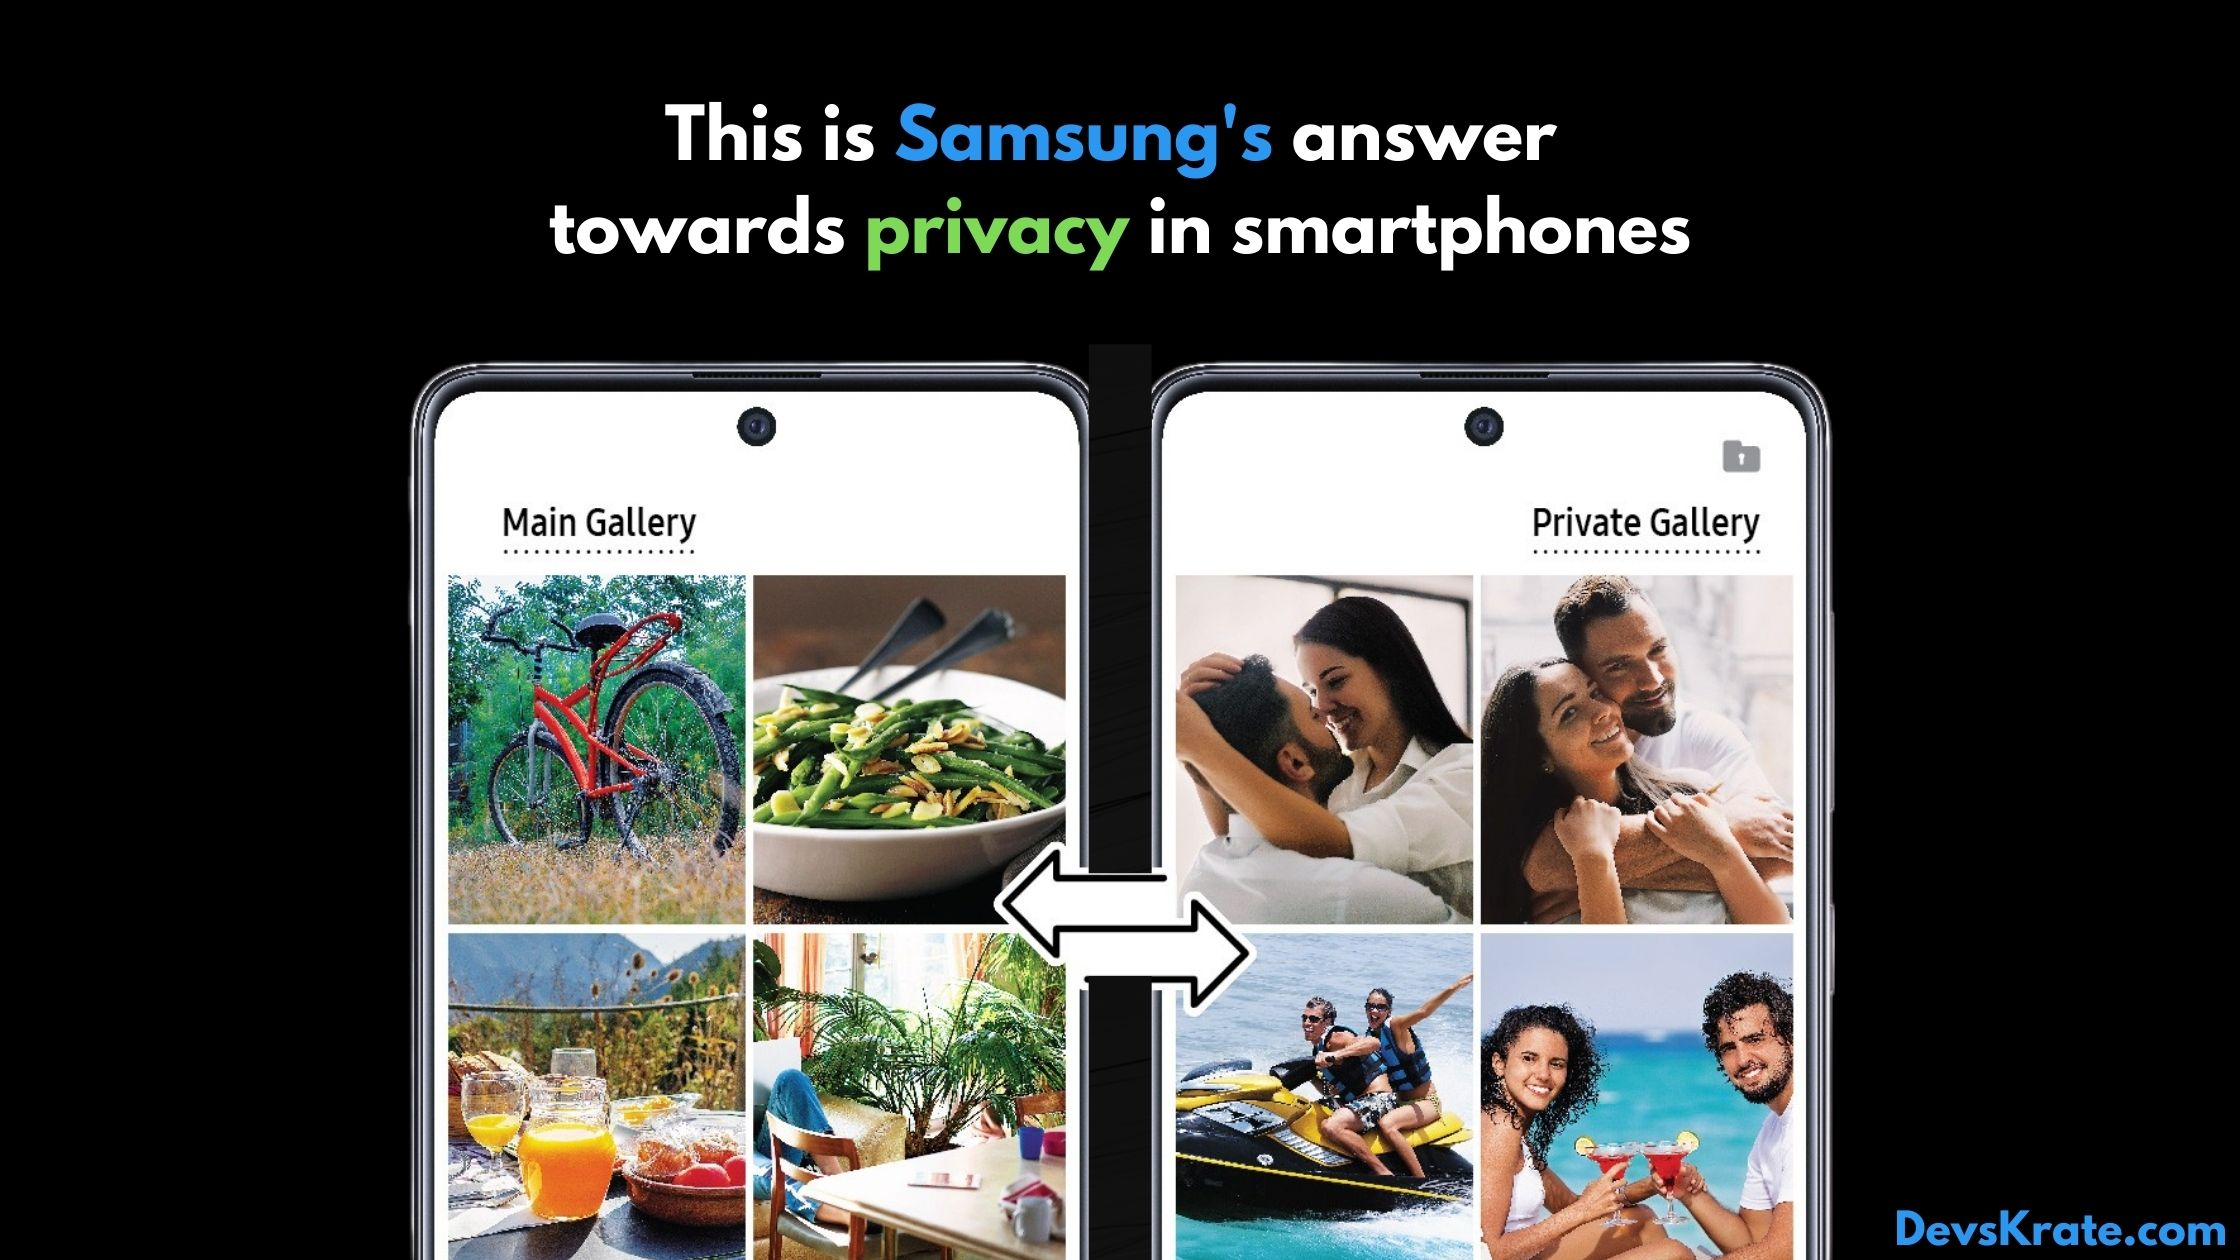 Samsung 'AltZLife': The Ultimate Private Mode